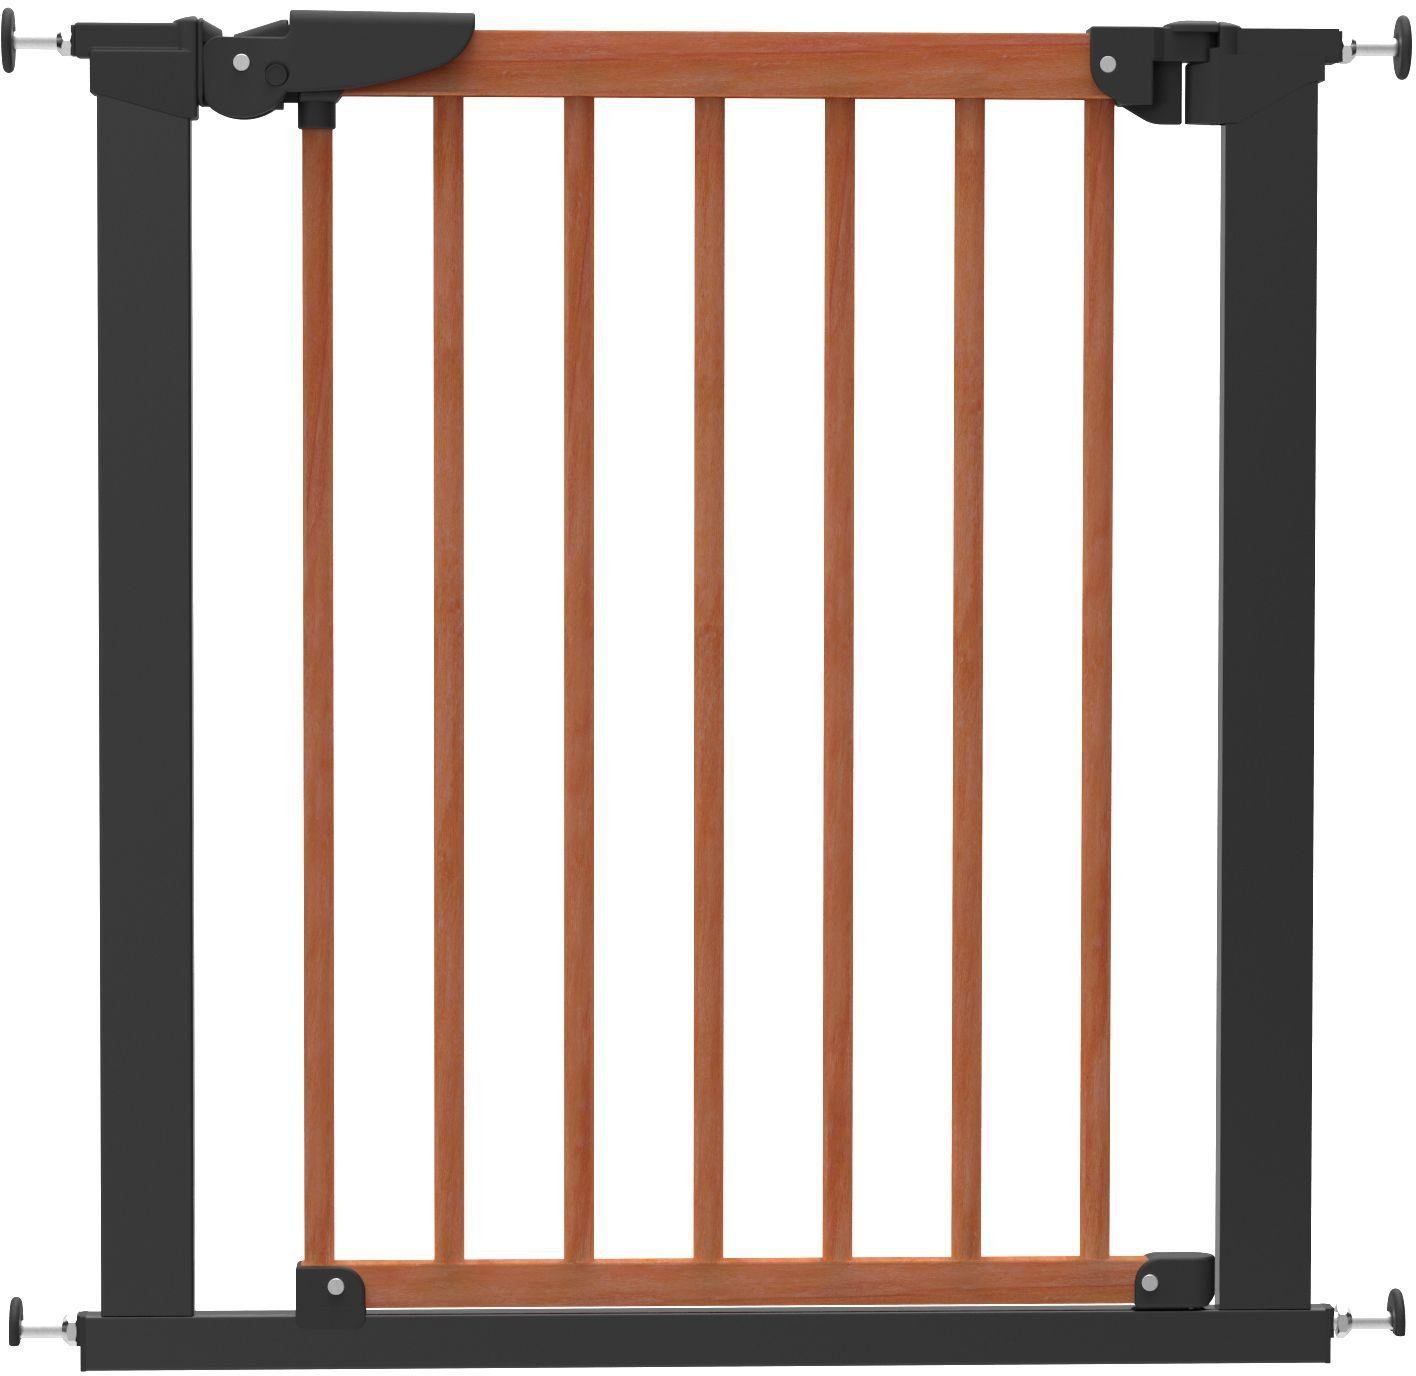 Image of BabyDan - Avantgarde Pressure Fit Safety Gate - Cherry Black